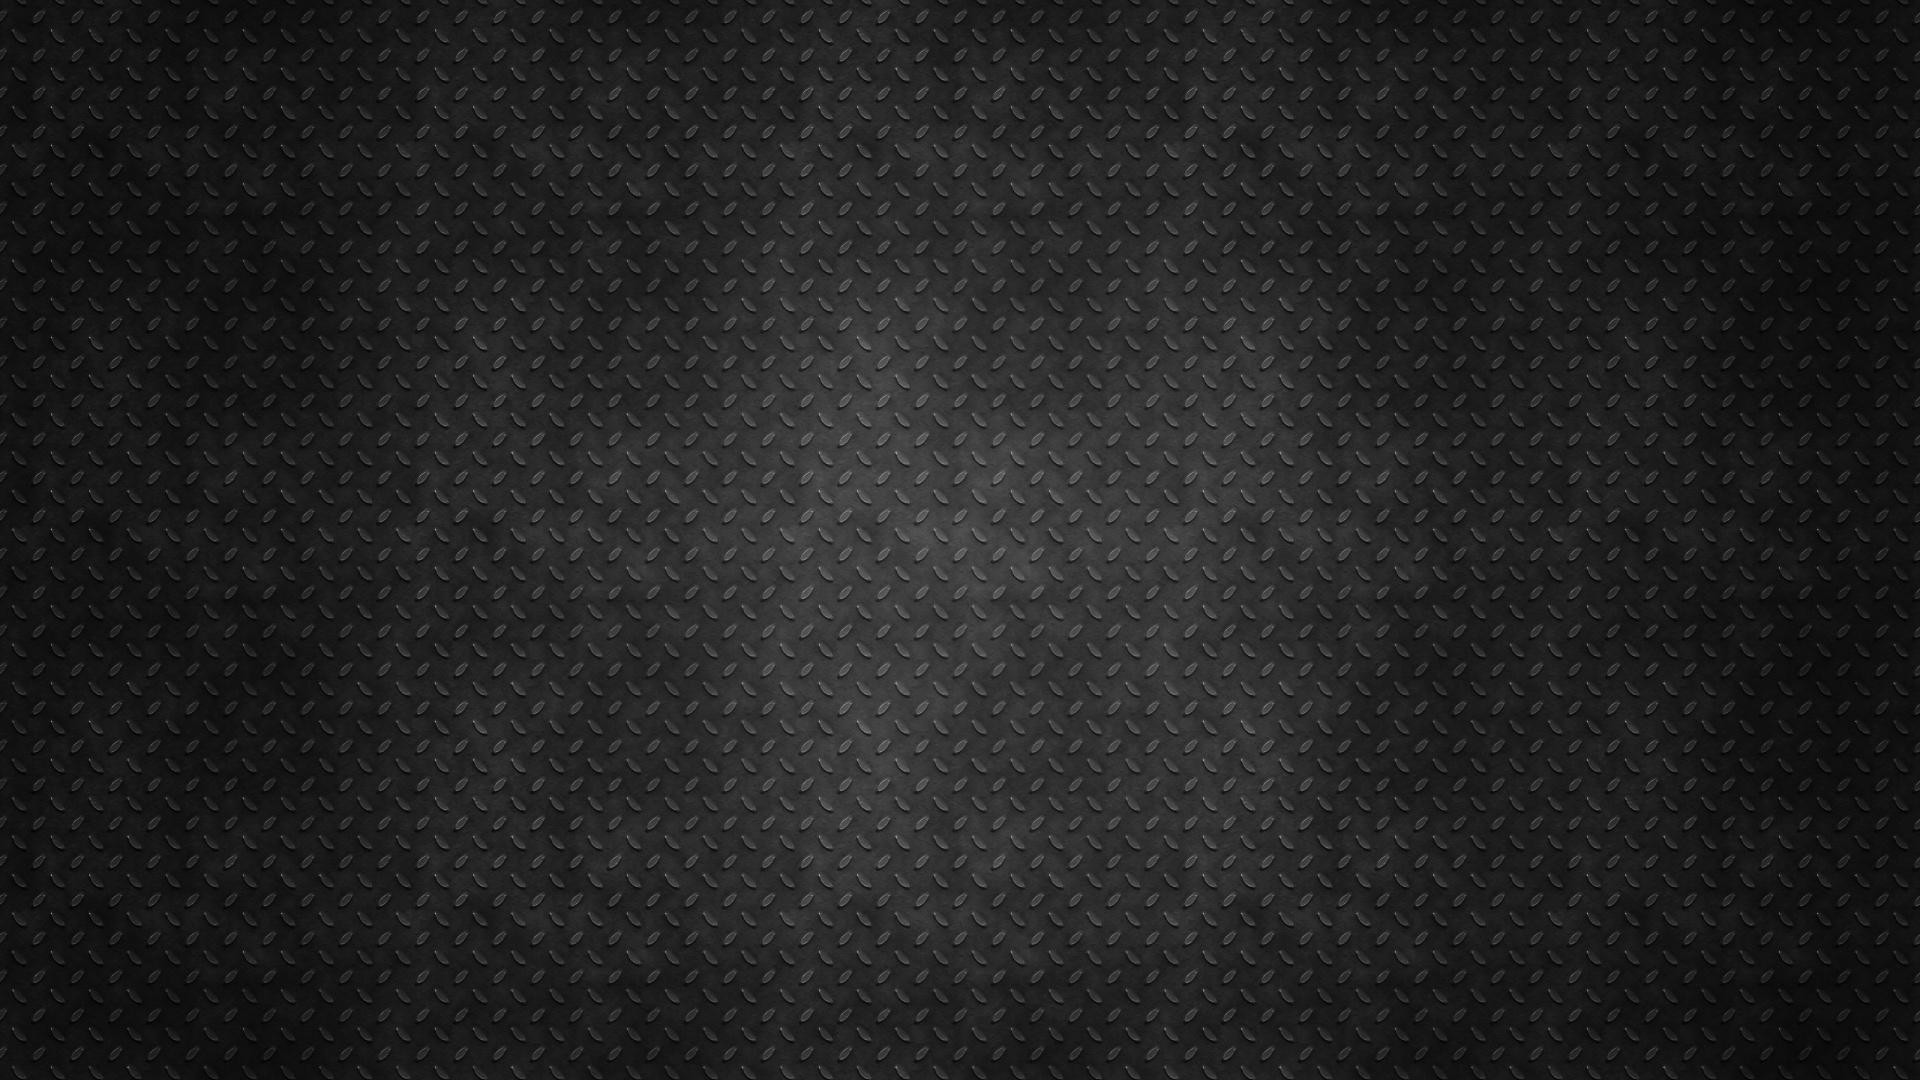 Wallpapers For > Pure Black Wallpaper Hd 1080p